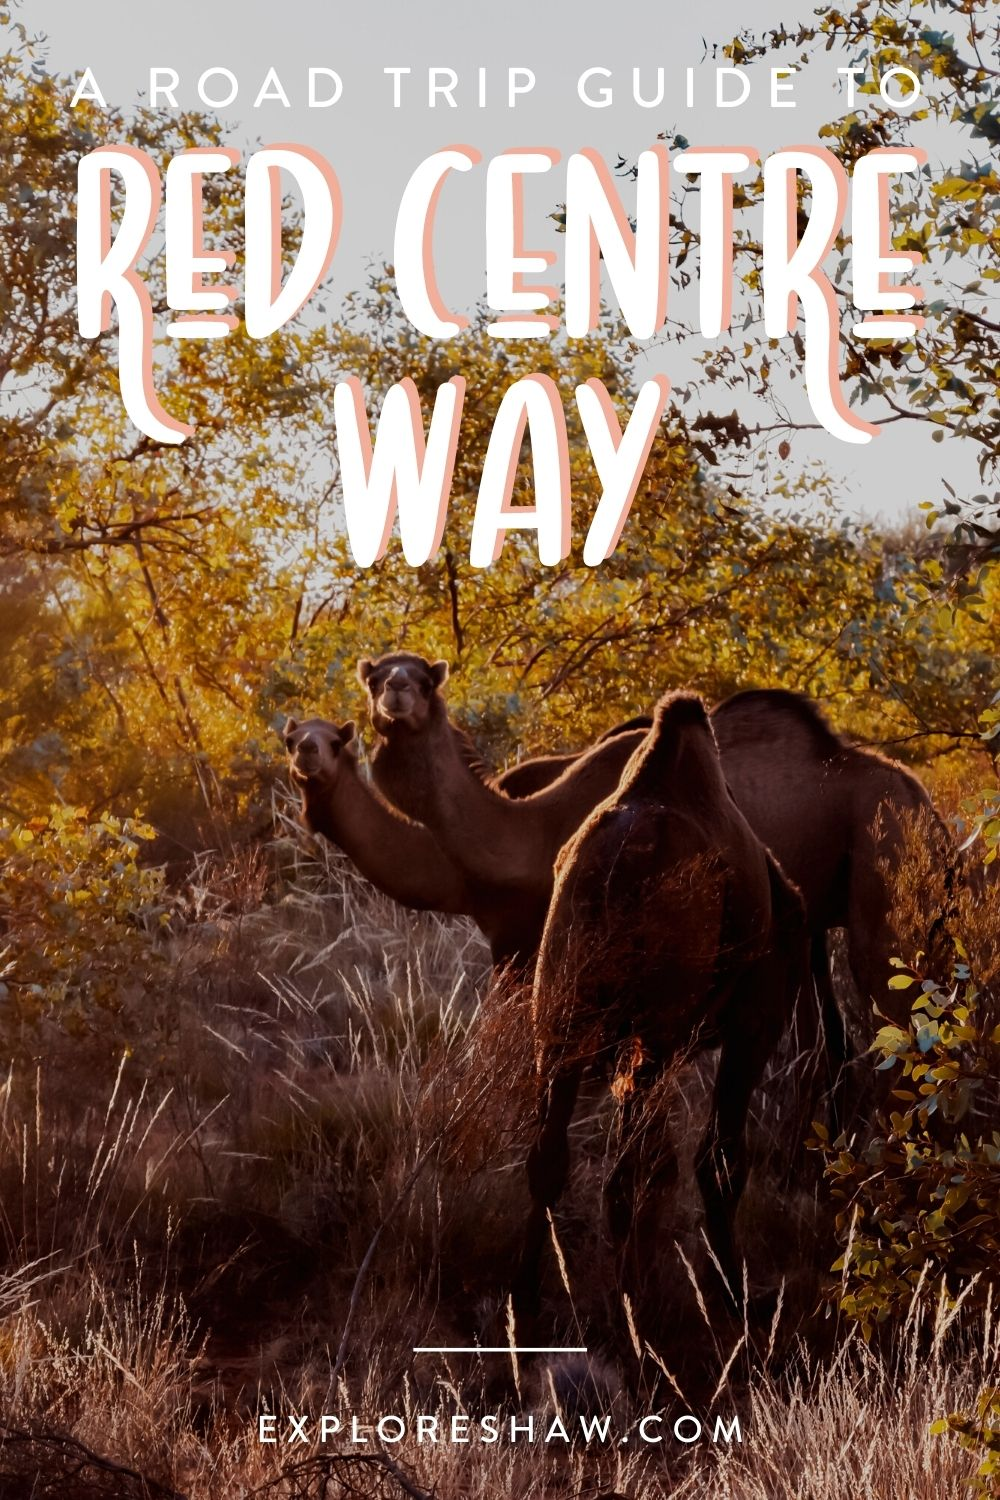 the ultimate guide to the red centre way